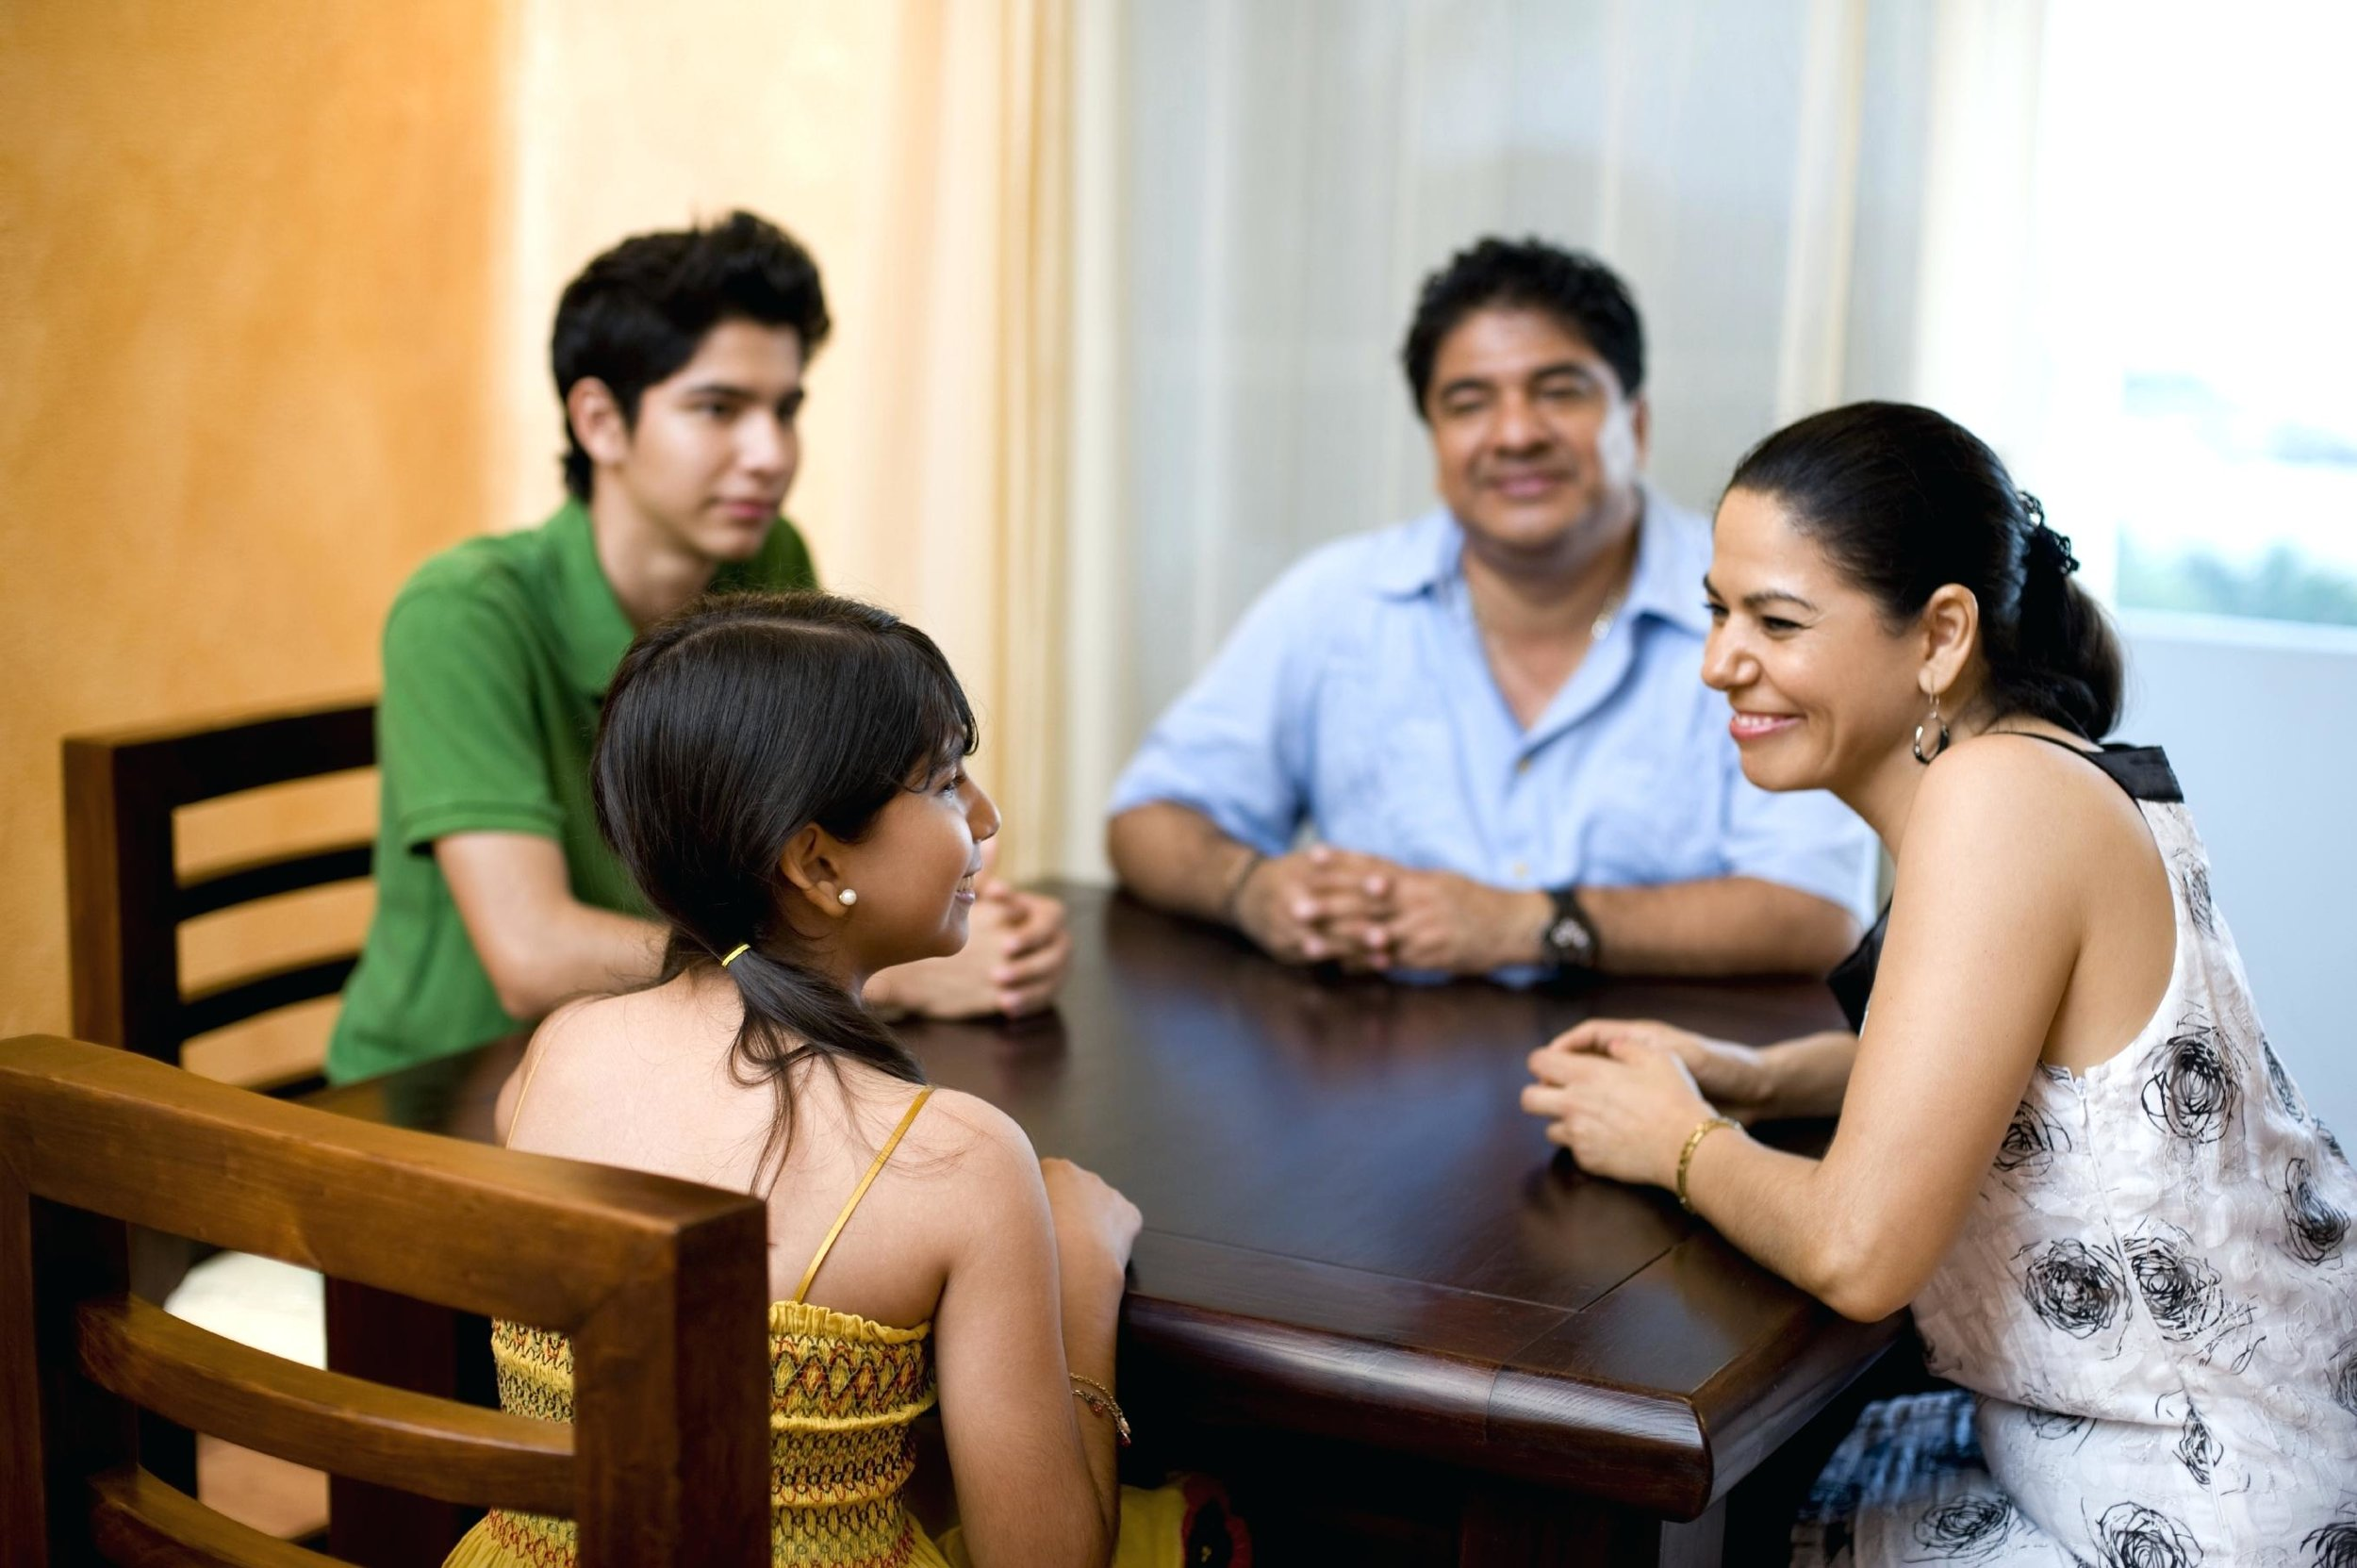 family-discussion-talking-at-table.jpg